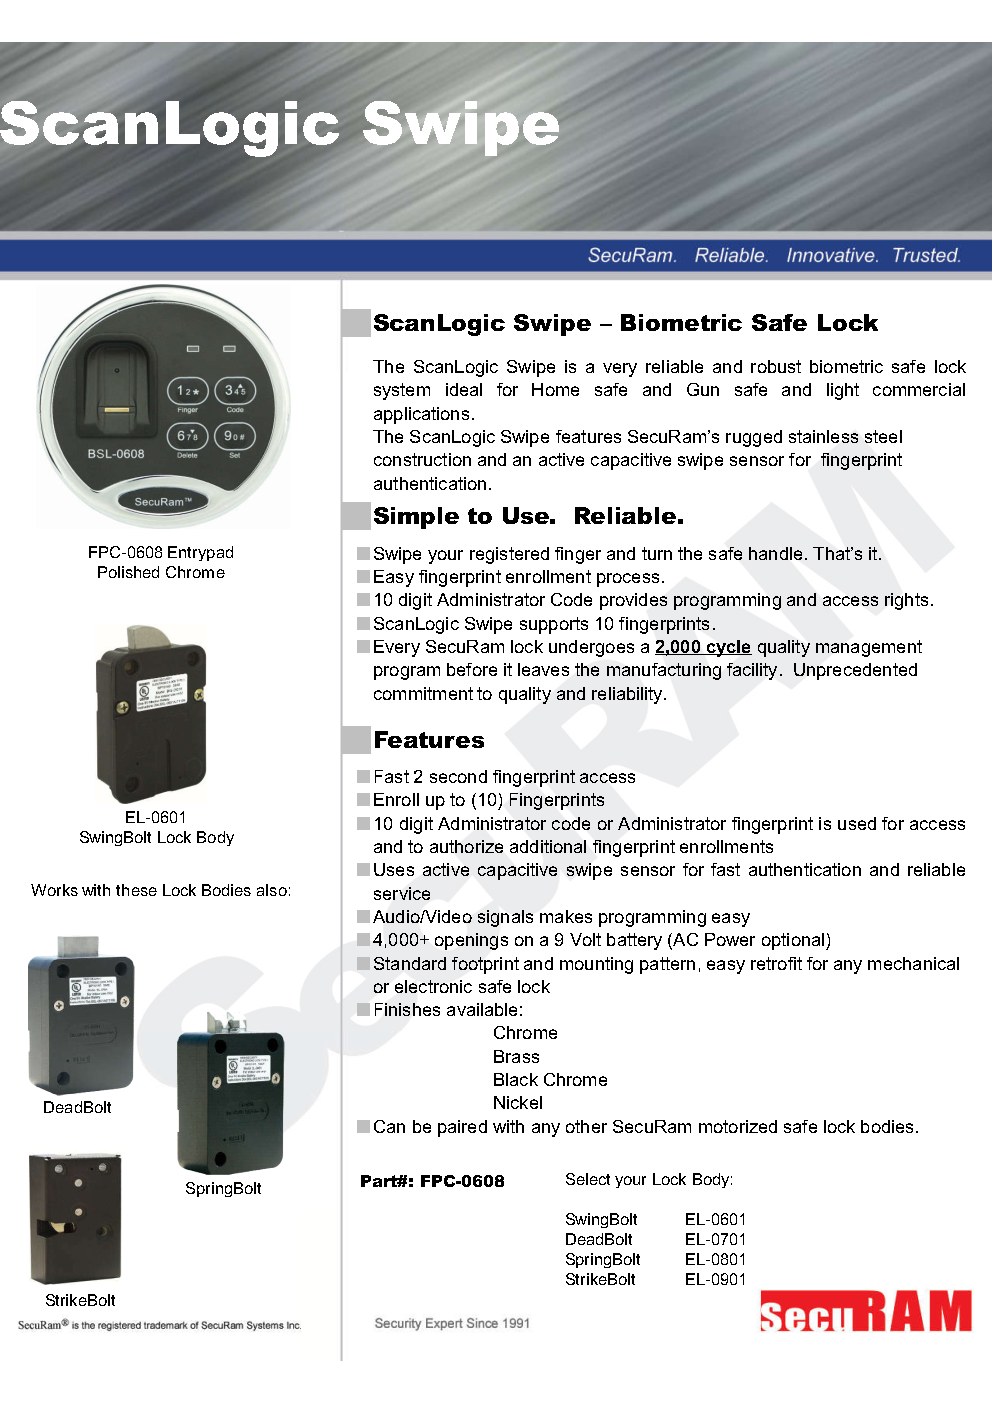 Biometric safe lock